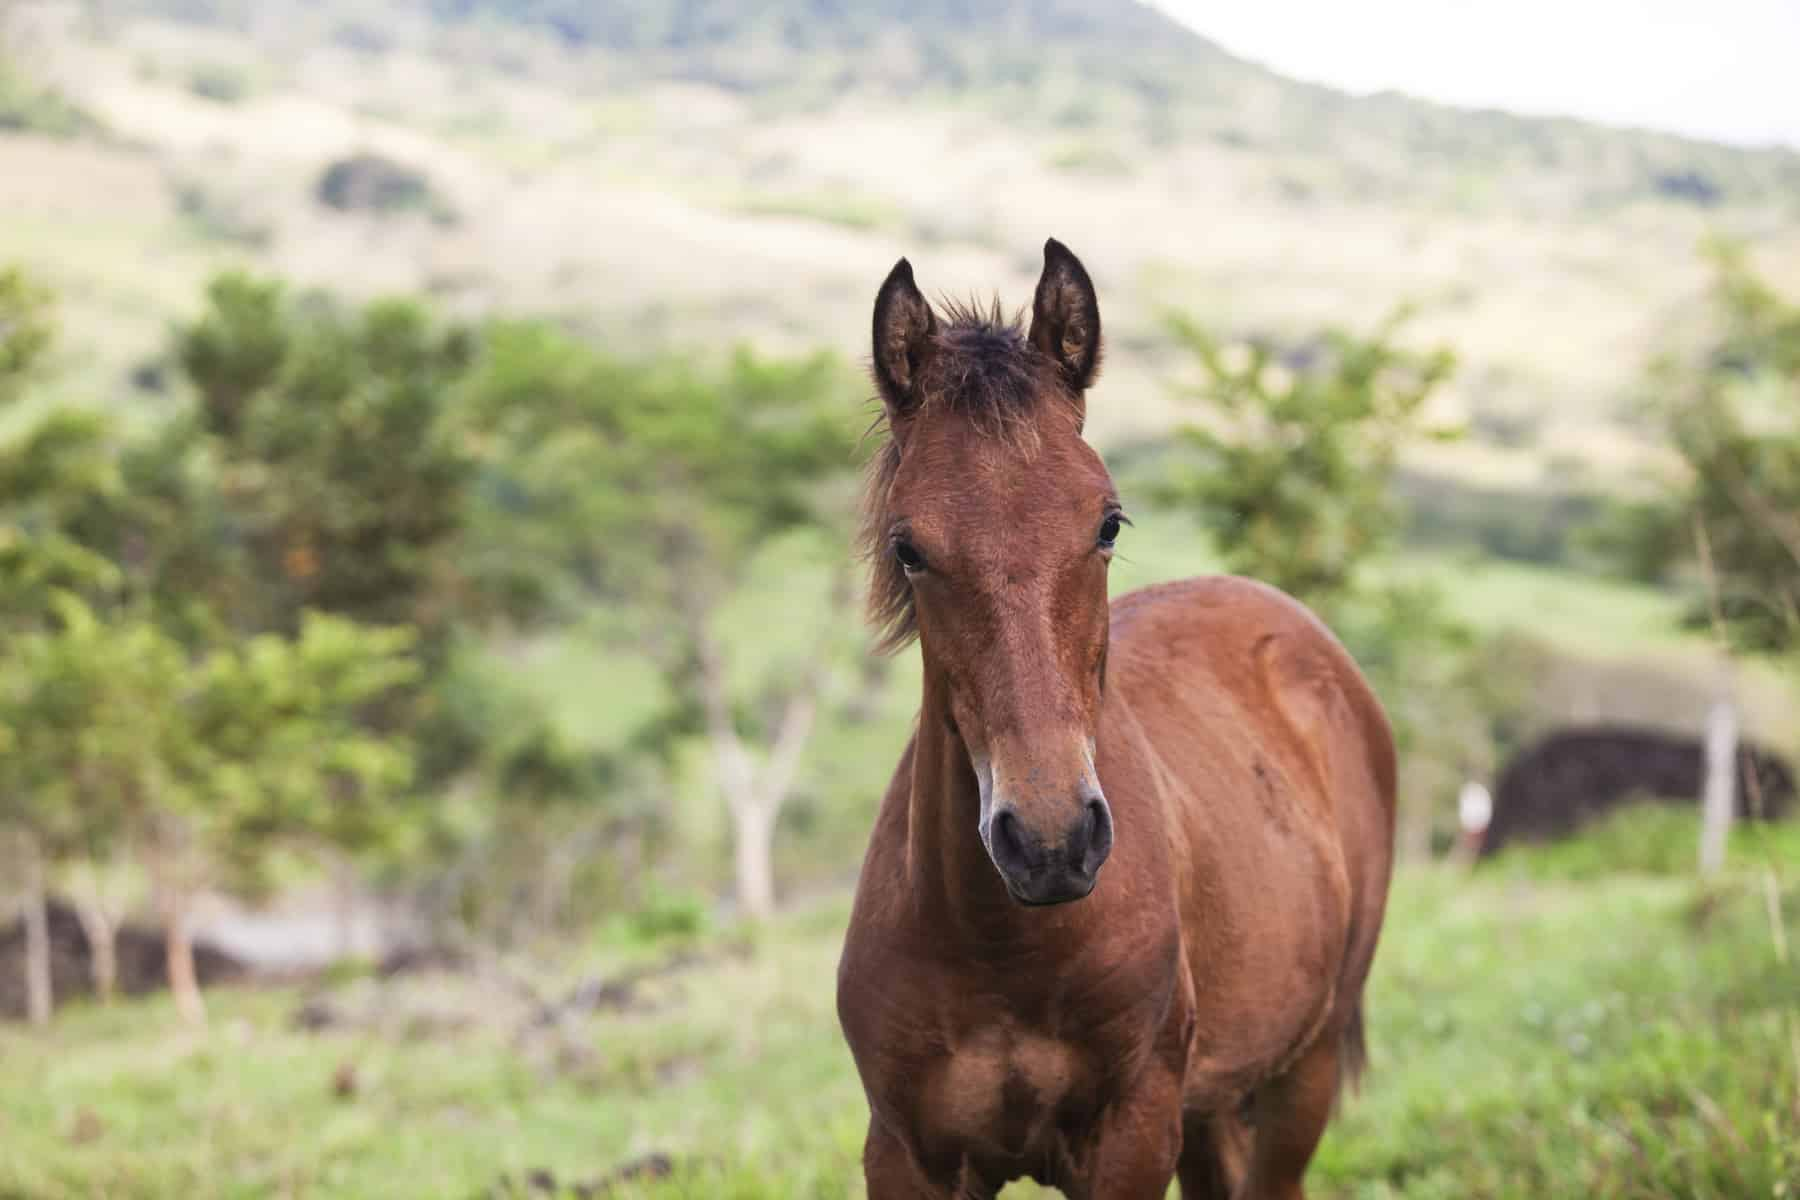 Growing Up: Estimating Adult Size in Horses